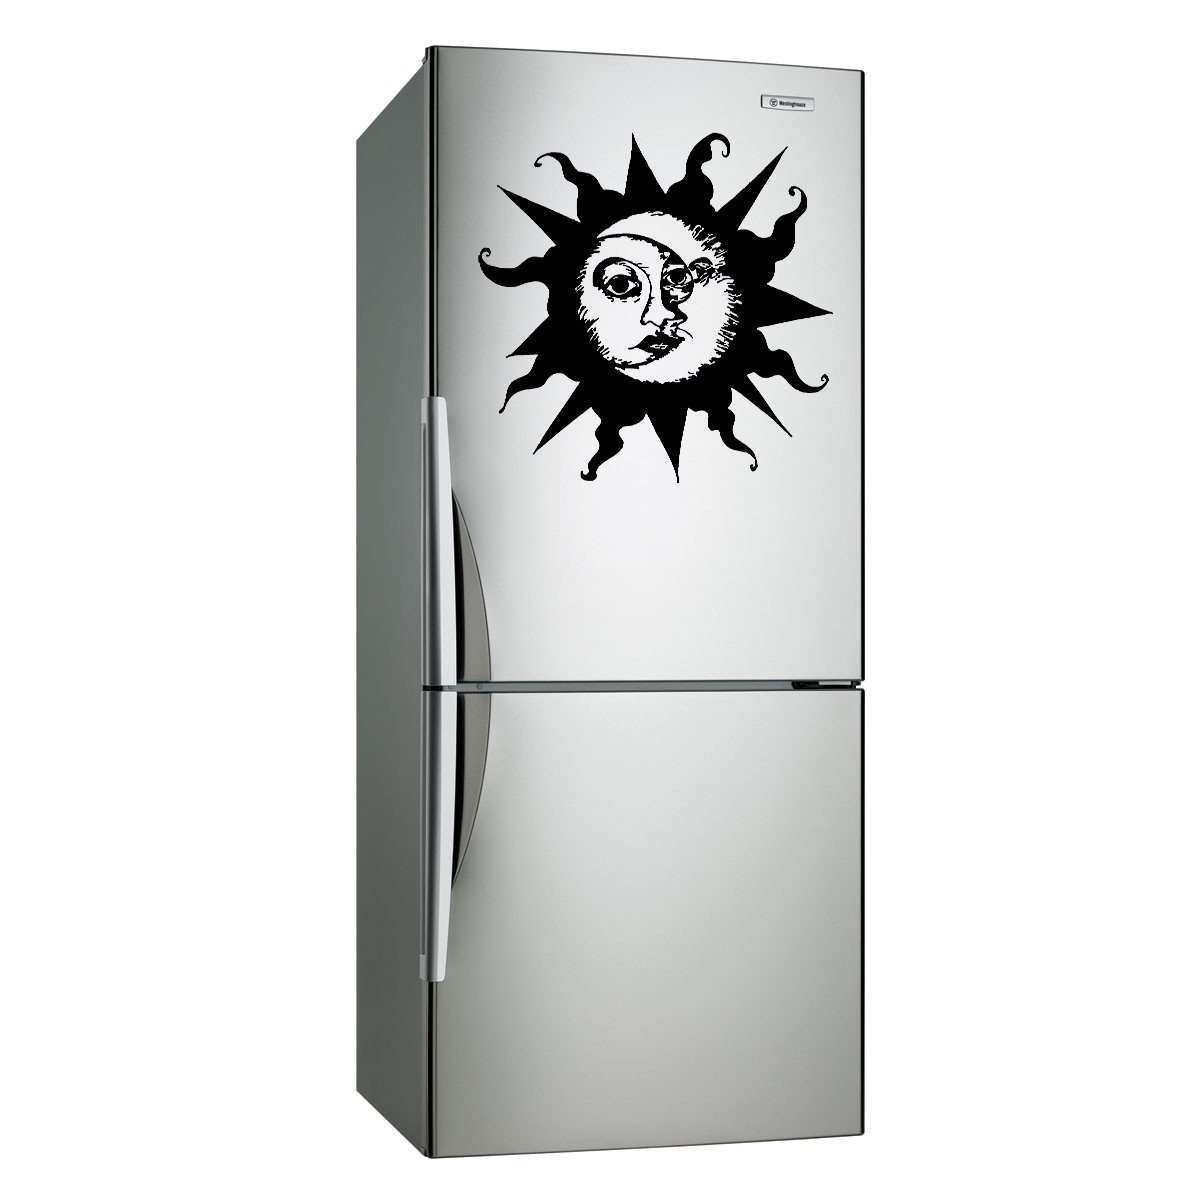 (28''x26'') Vinyl Wall Decal Sun & Moon / Crescent Ethical Symbol Decor Sticker + Free Decal Gift!